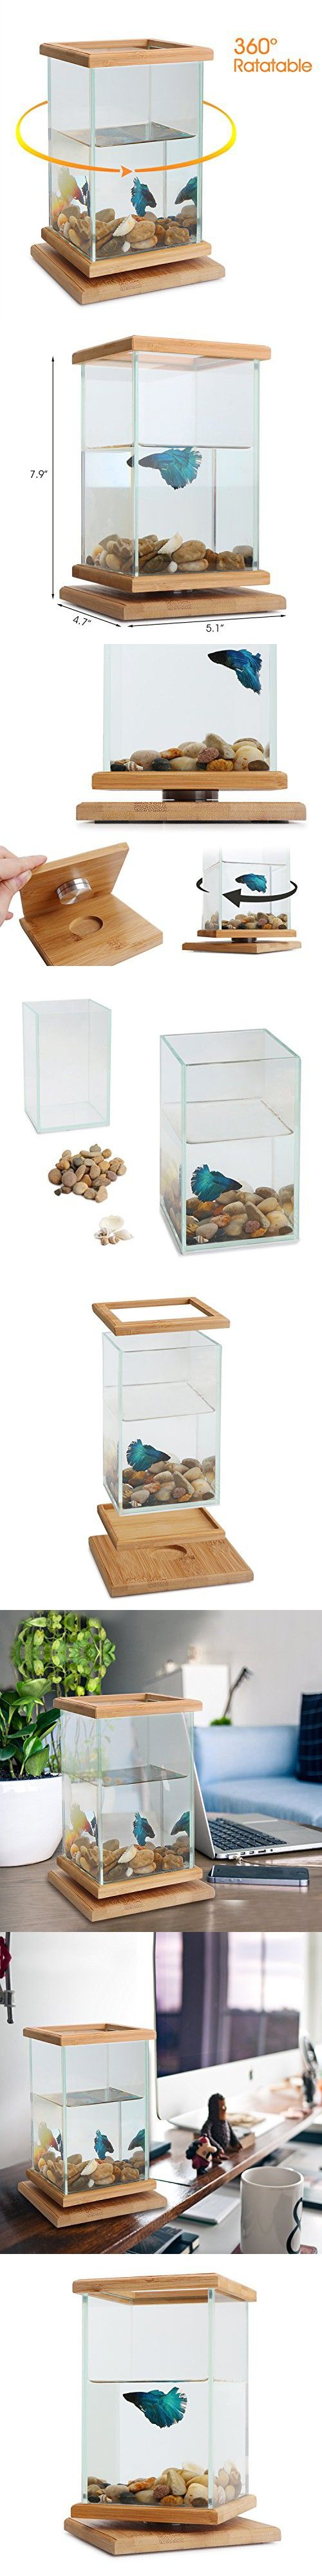 Rotatable Fish Bowls, Segarty Cool Unique Design Small Square Glass Vase Creative Aquarium Kit with Gravel and Shells, Desktop Decorative Fish Tank Could be Betta Fish & Gold Fish Pot